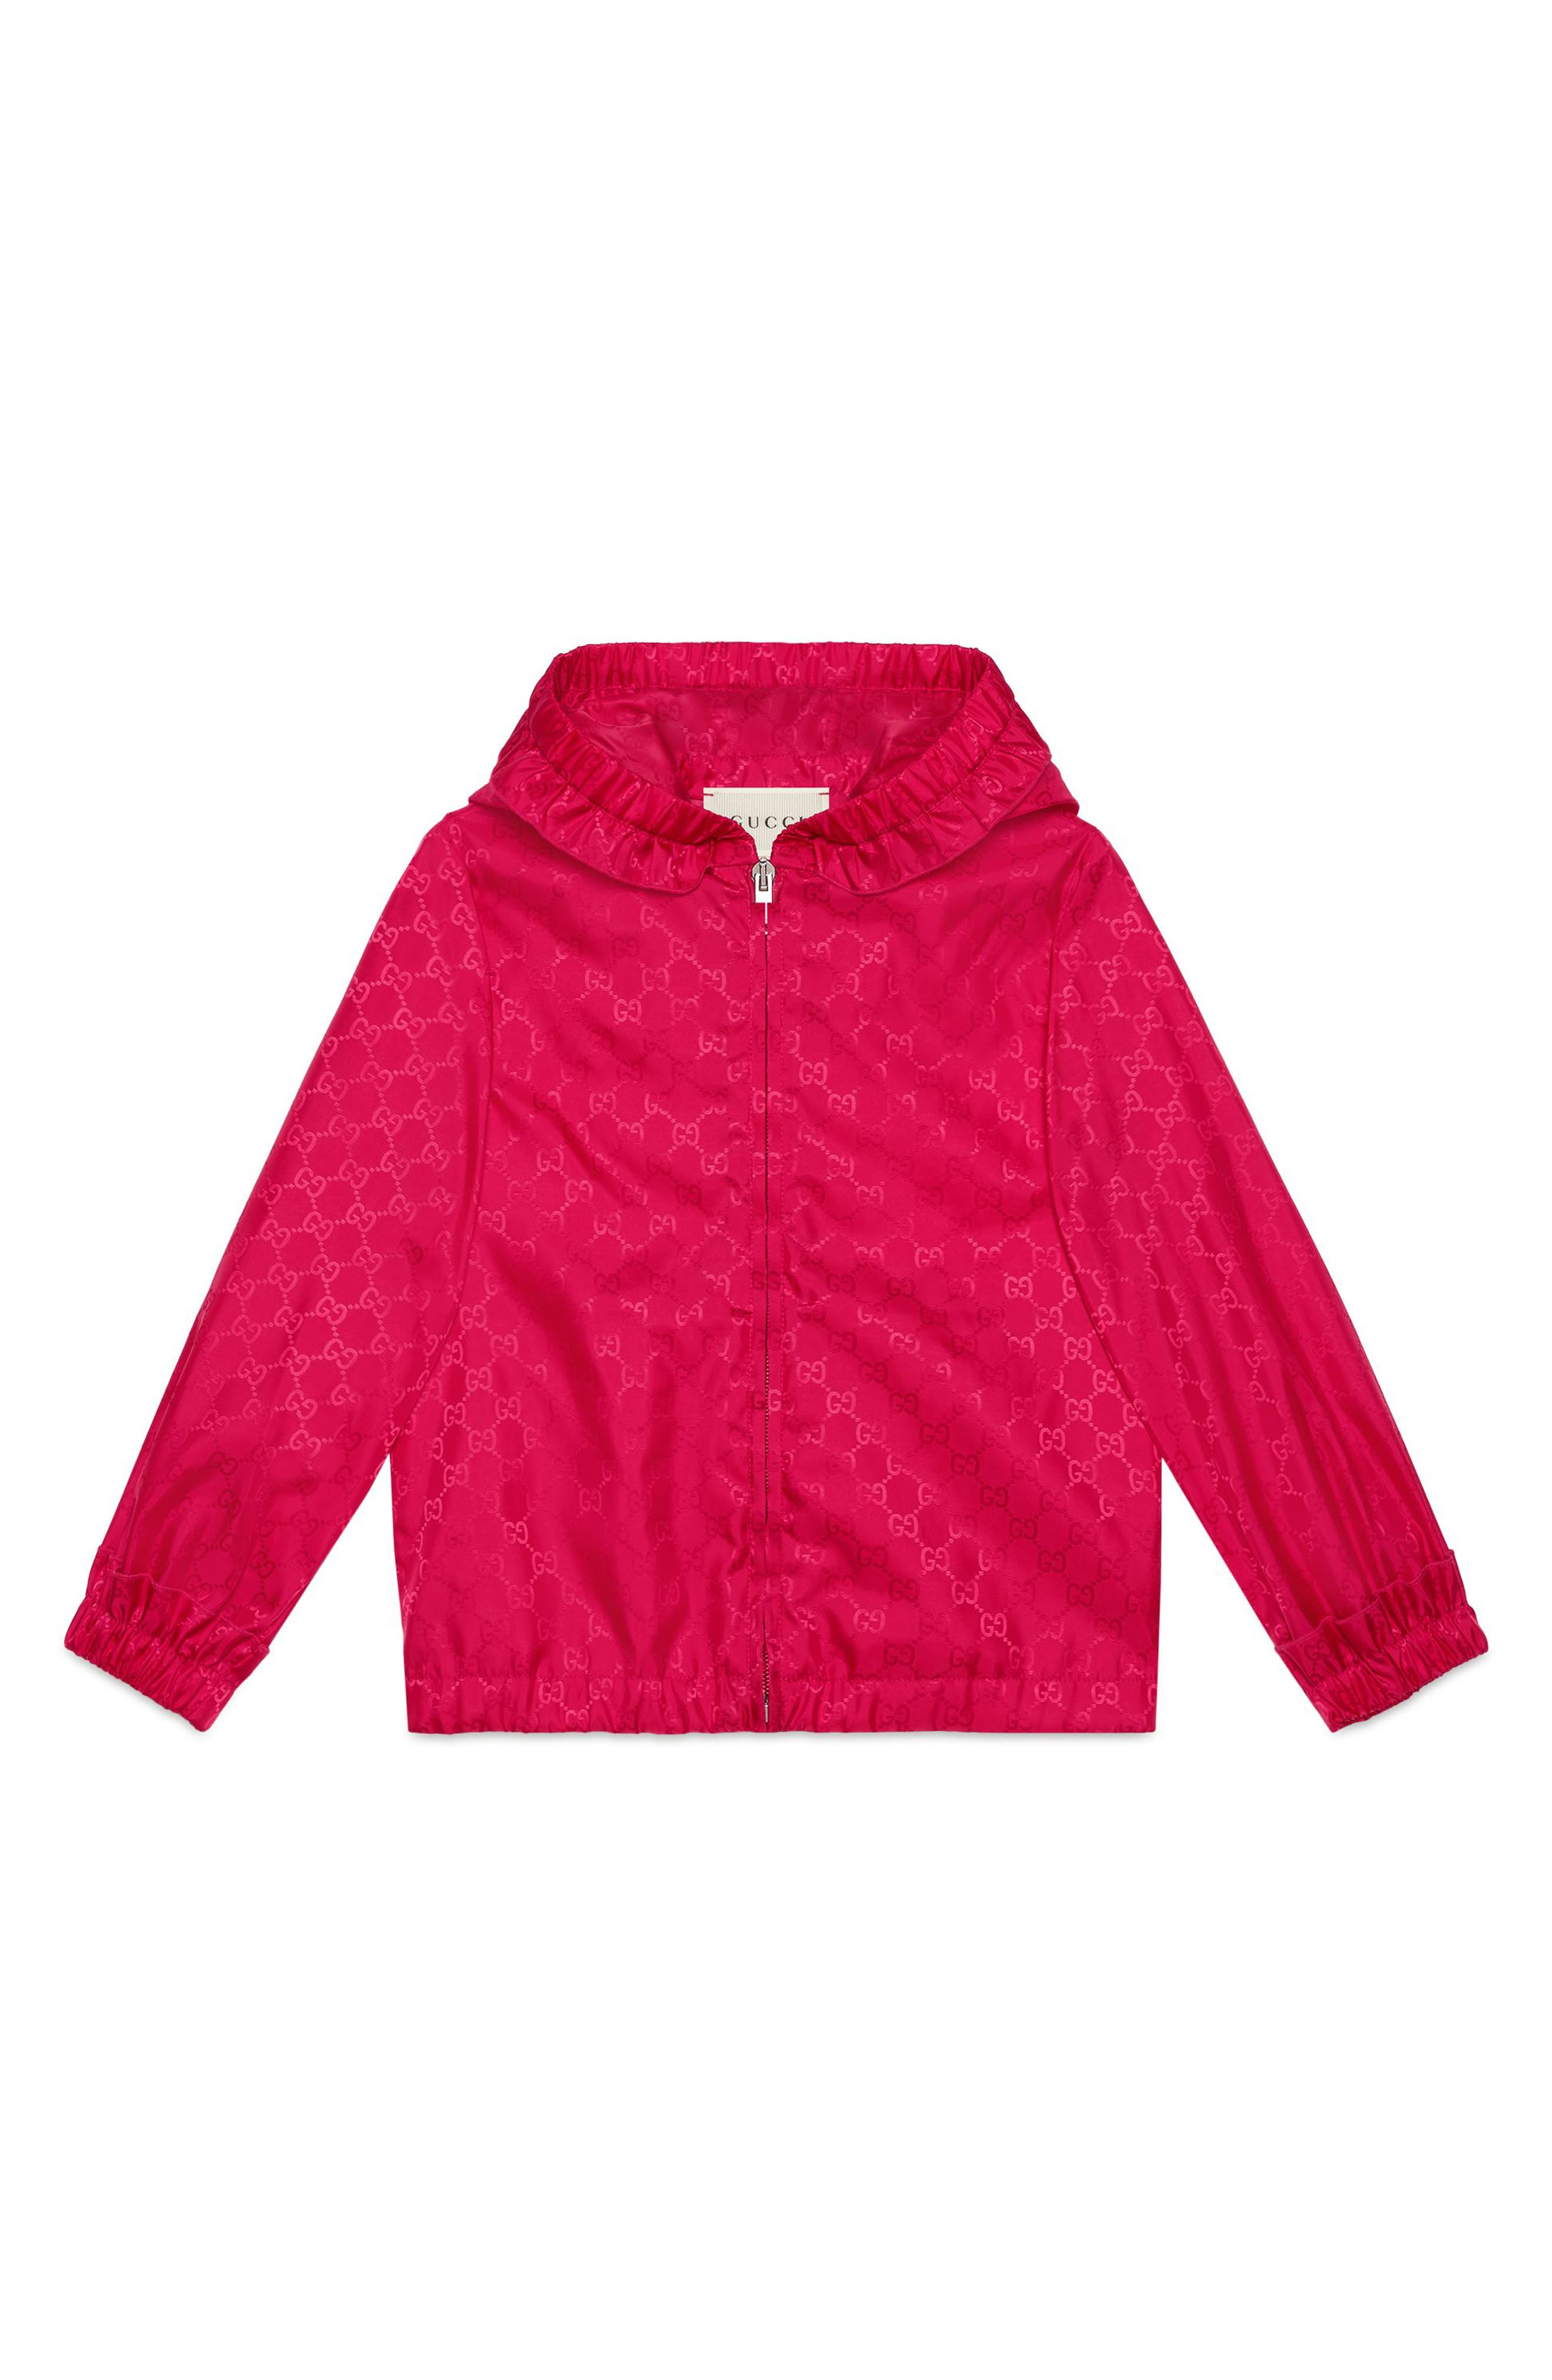 Water Resistant Hooded Windbreaker,                             Main thumbnail 1, color,                             Fuxia